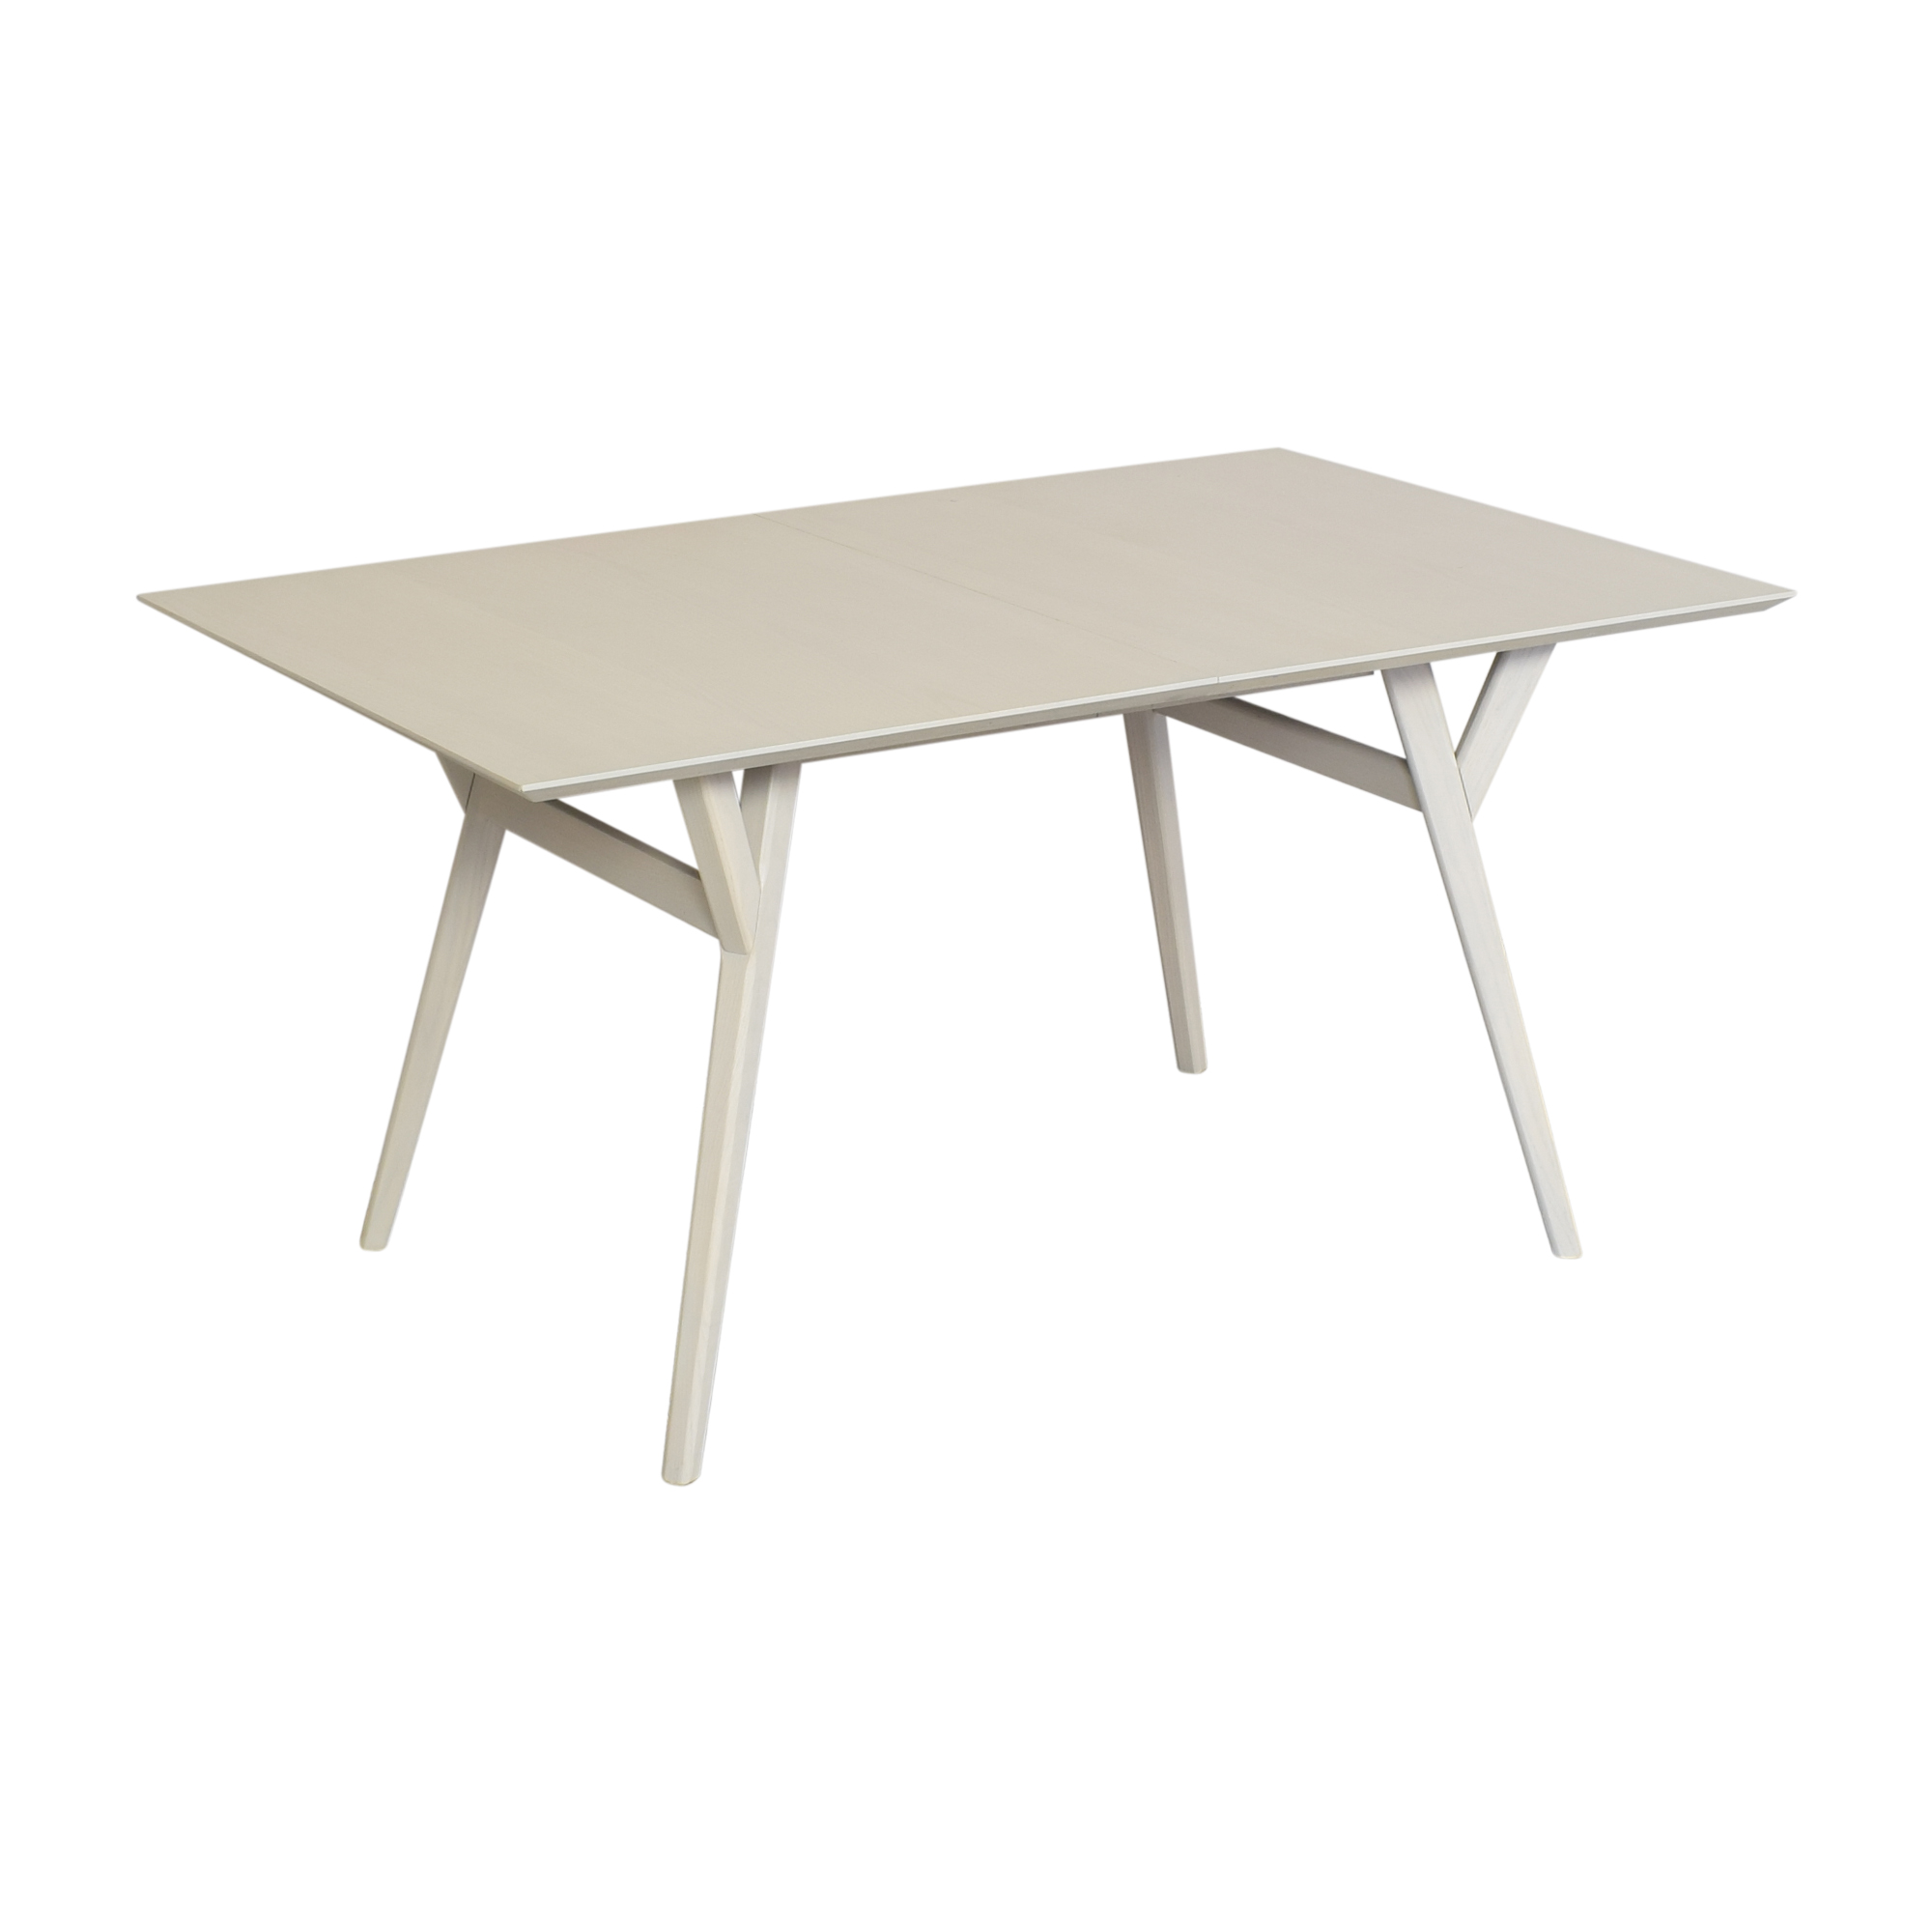 West Elm West Elm Mid Century Expandable Dining Table ma